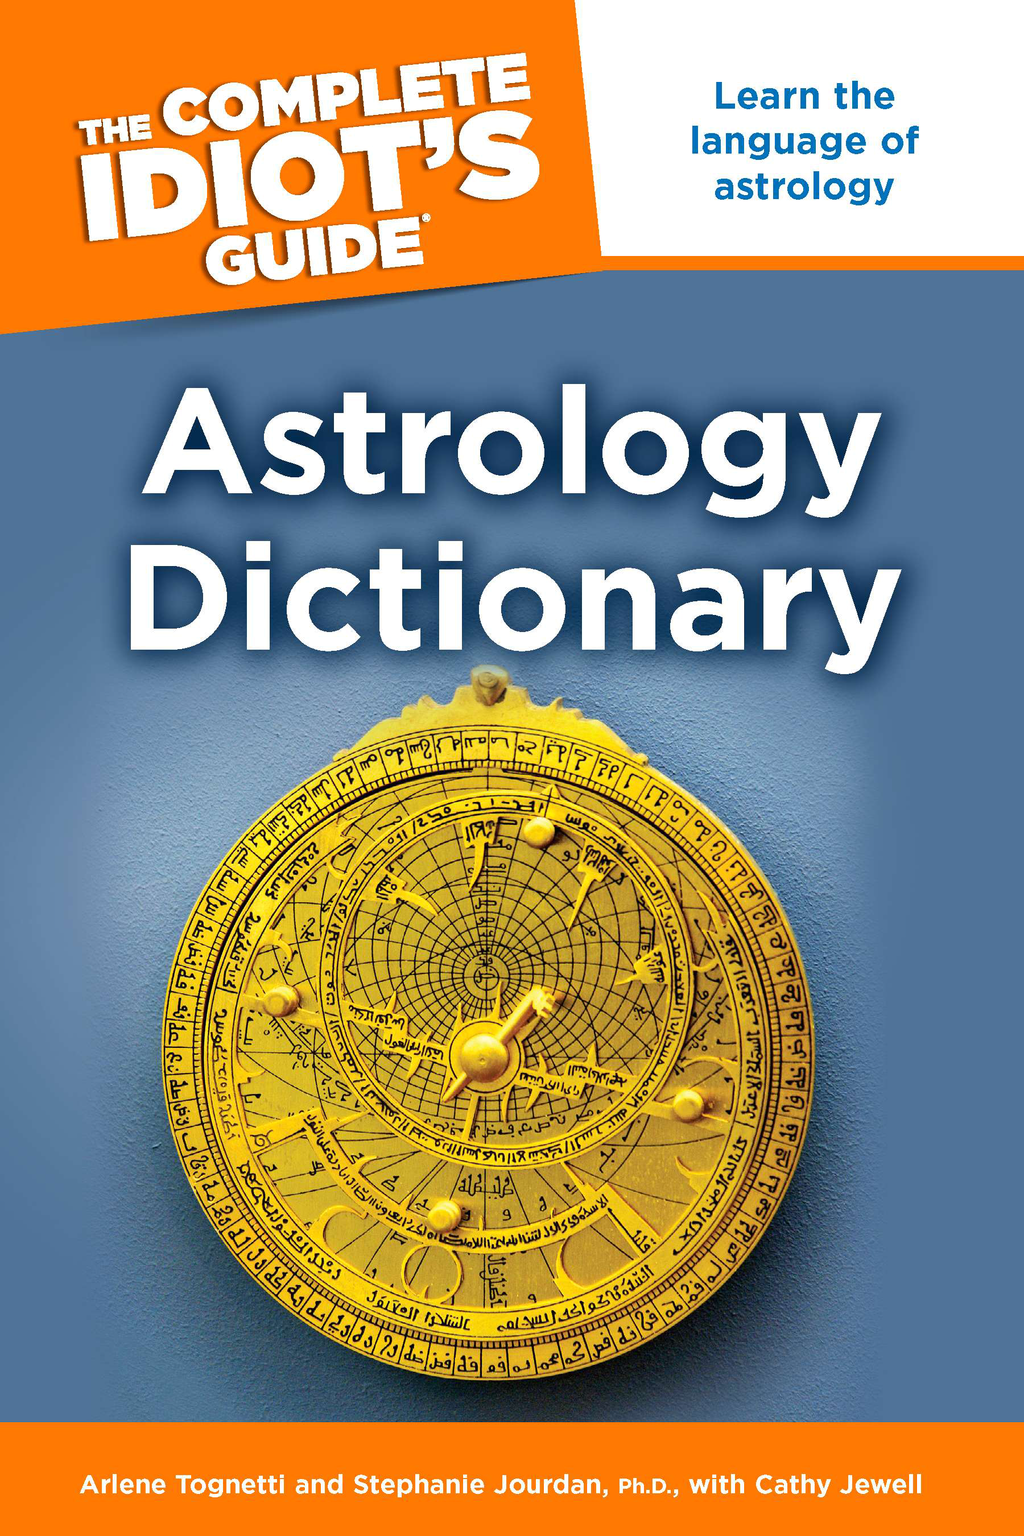 The Complete Idiot's Guide Astrology Dictionary By: Arlene Tognetti,Stephene Jourdan